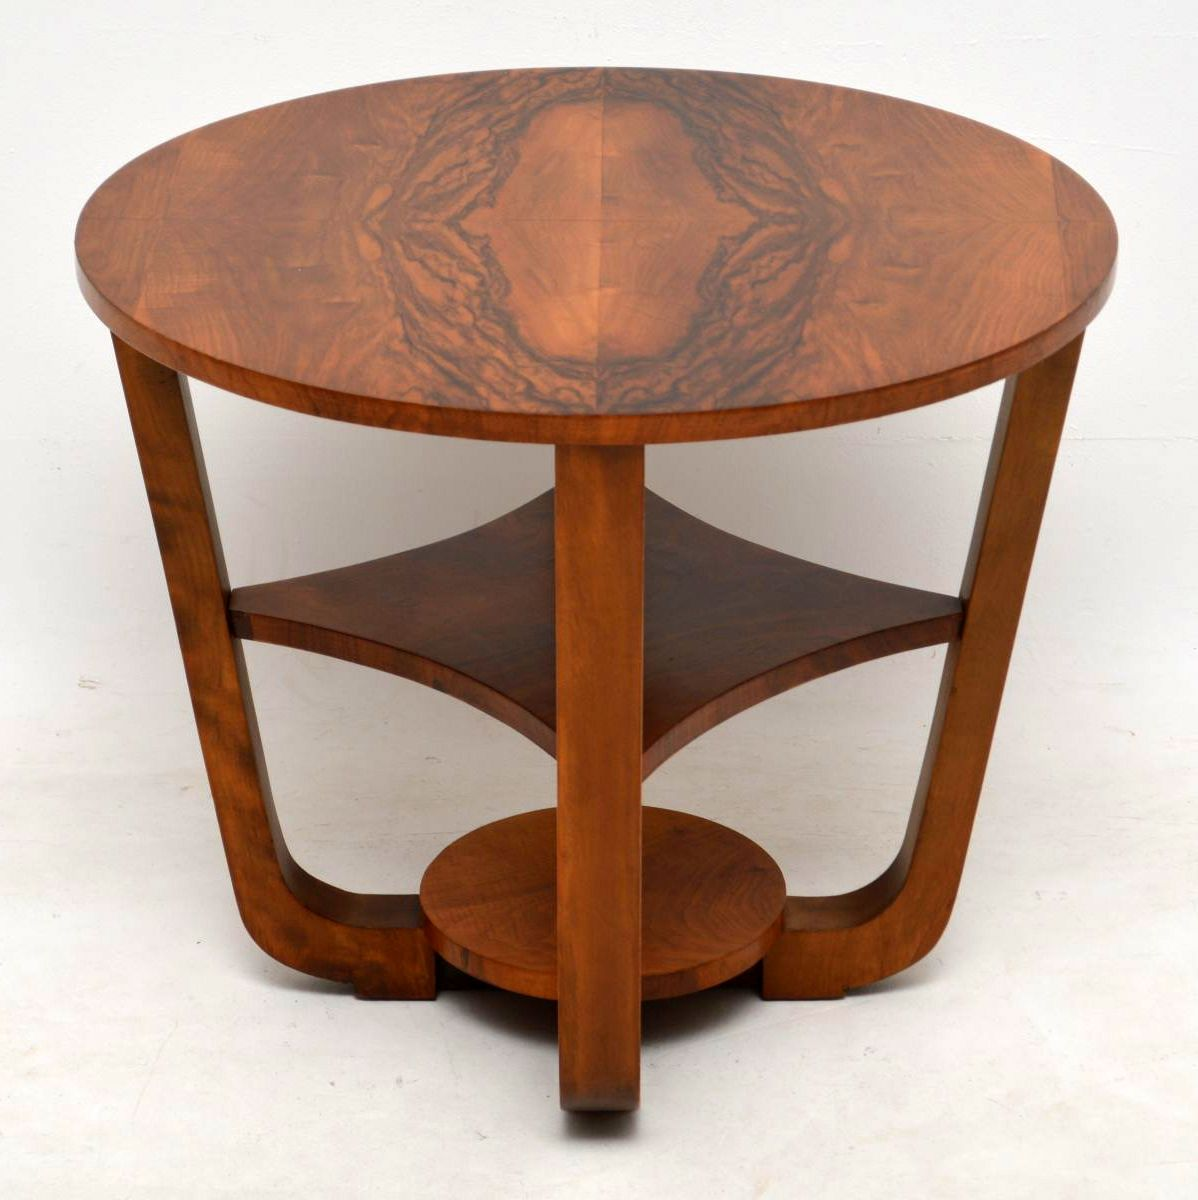 1920's Art Deco Figured Walnut Coffee Table